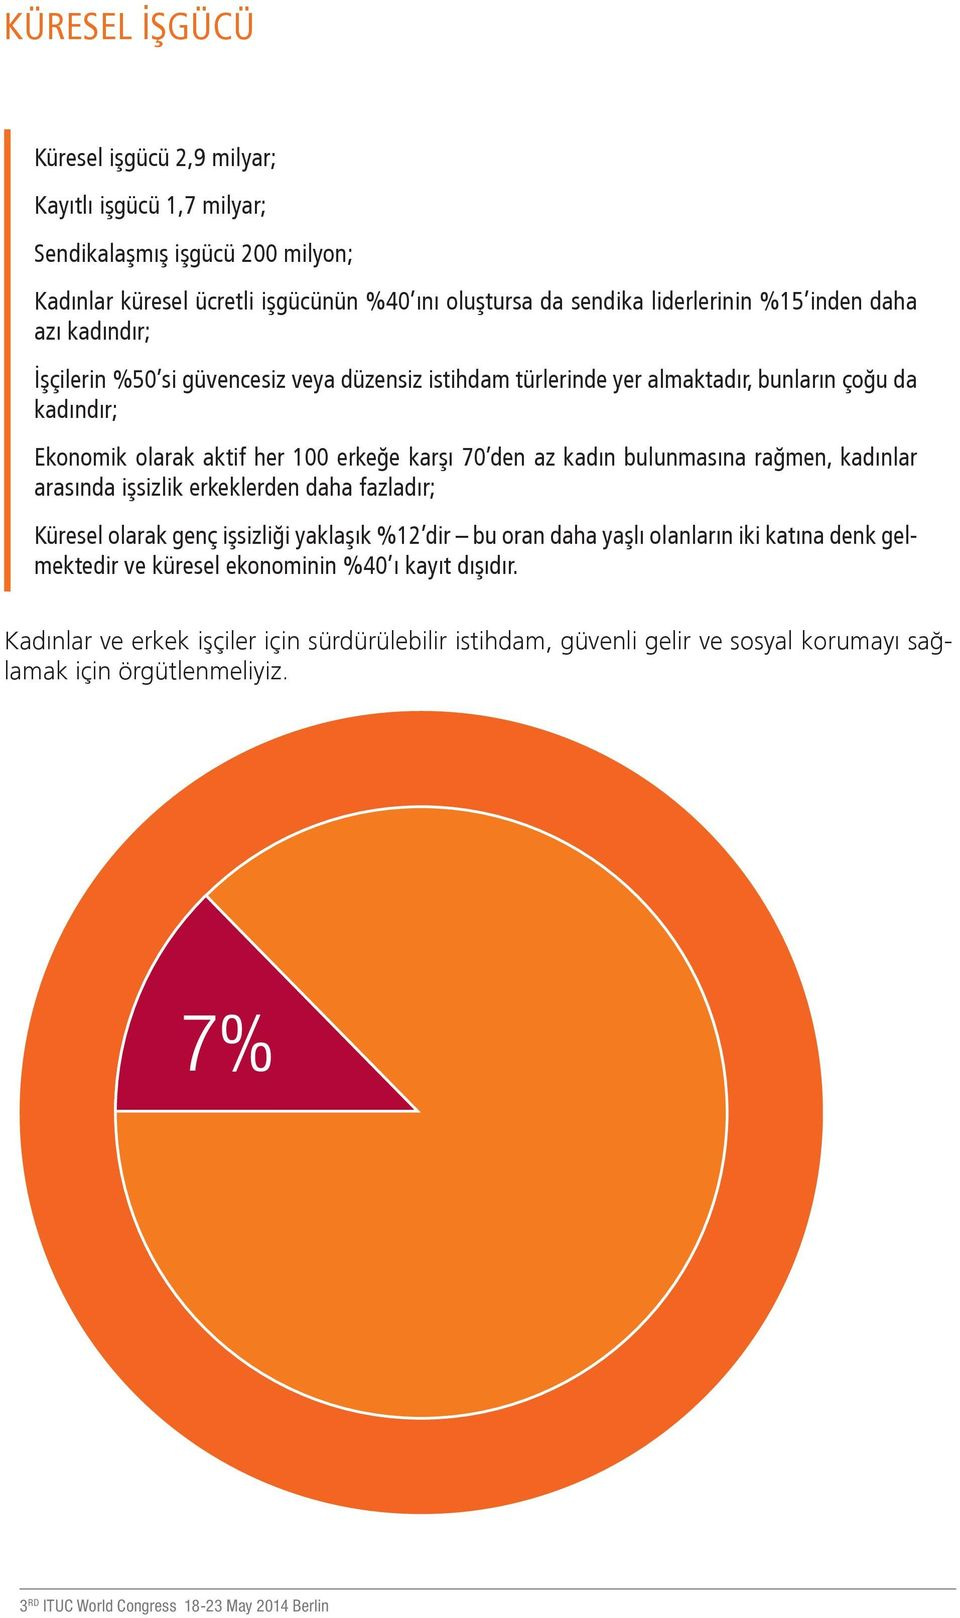 7 billion; Kadınlar The unionised küresel workforce ücretli işgücünün is 200 %40 ını million; oluştursa da sendika liderlerinin %15 inden daha azı Women kadındır; are 40% of the global paid workforce